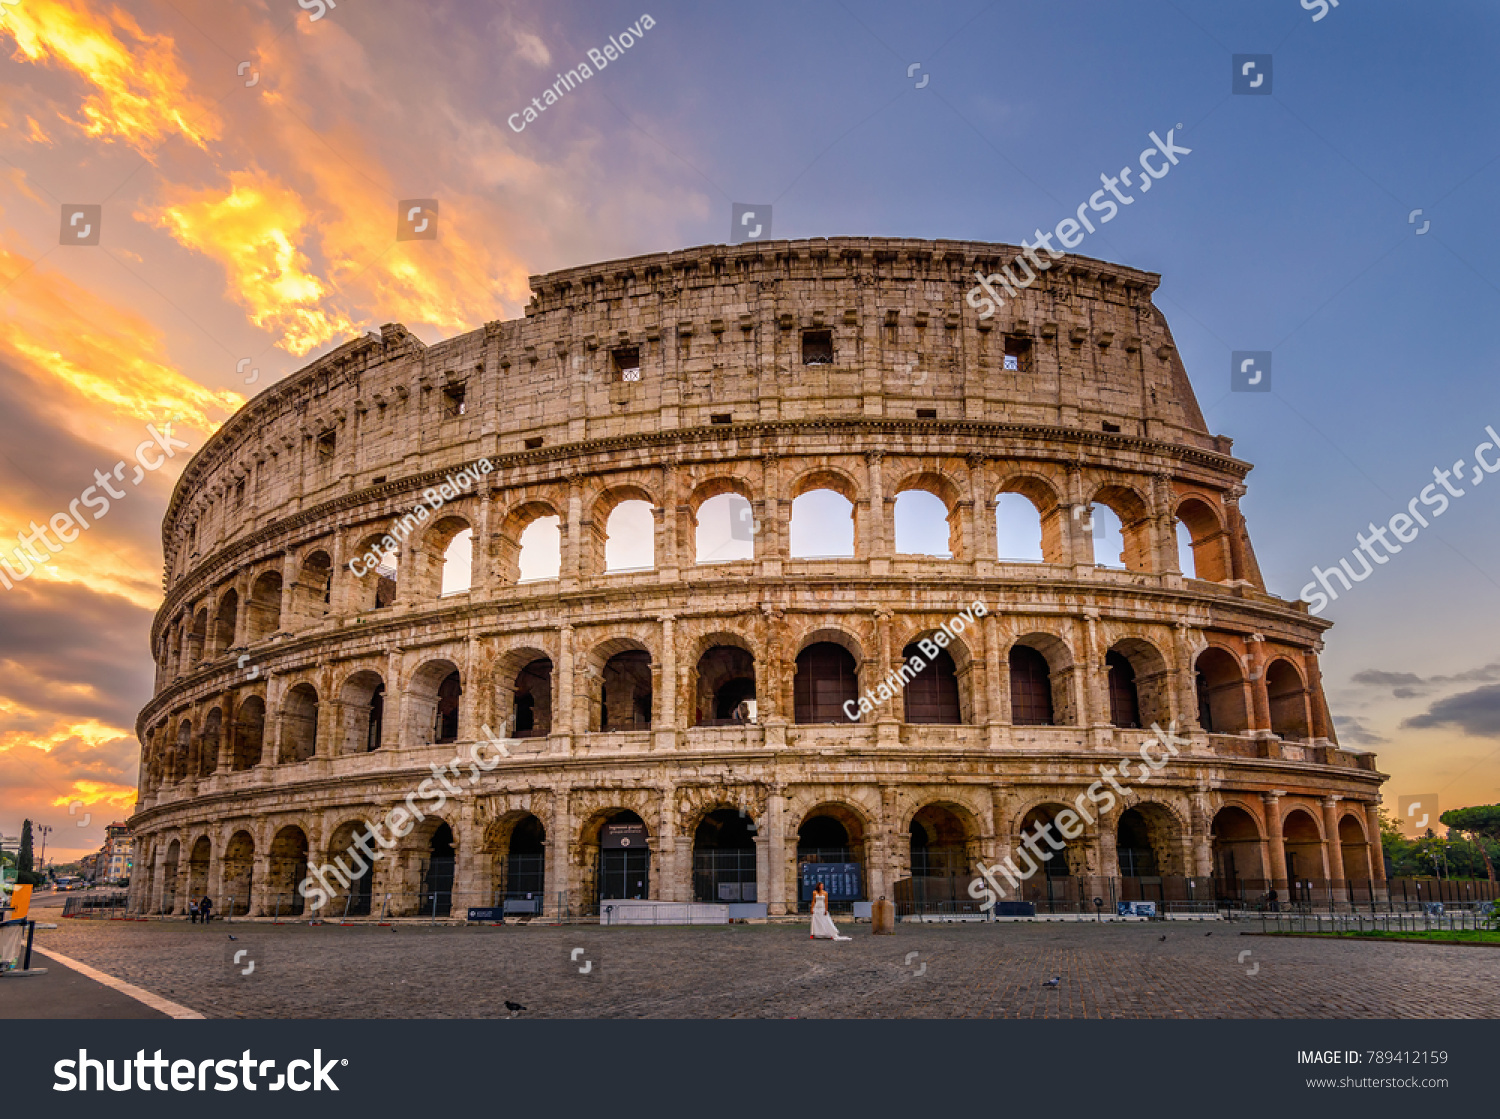 Sunrise view of Colosseum in Rome, Italy. Rome architecture and landmark. Rome Colosseum is one of the main attractions of Rome and Italy #789412159